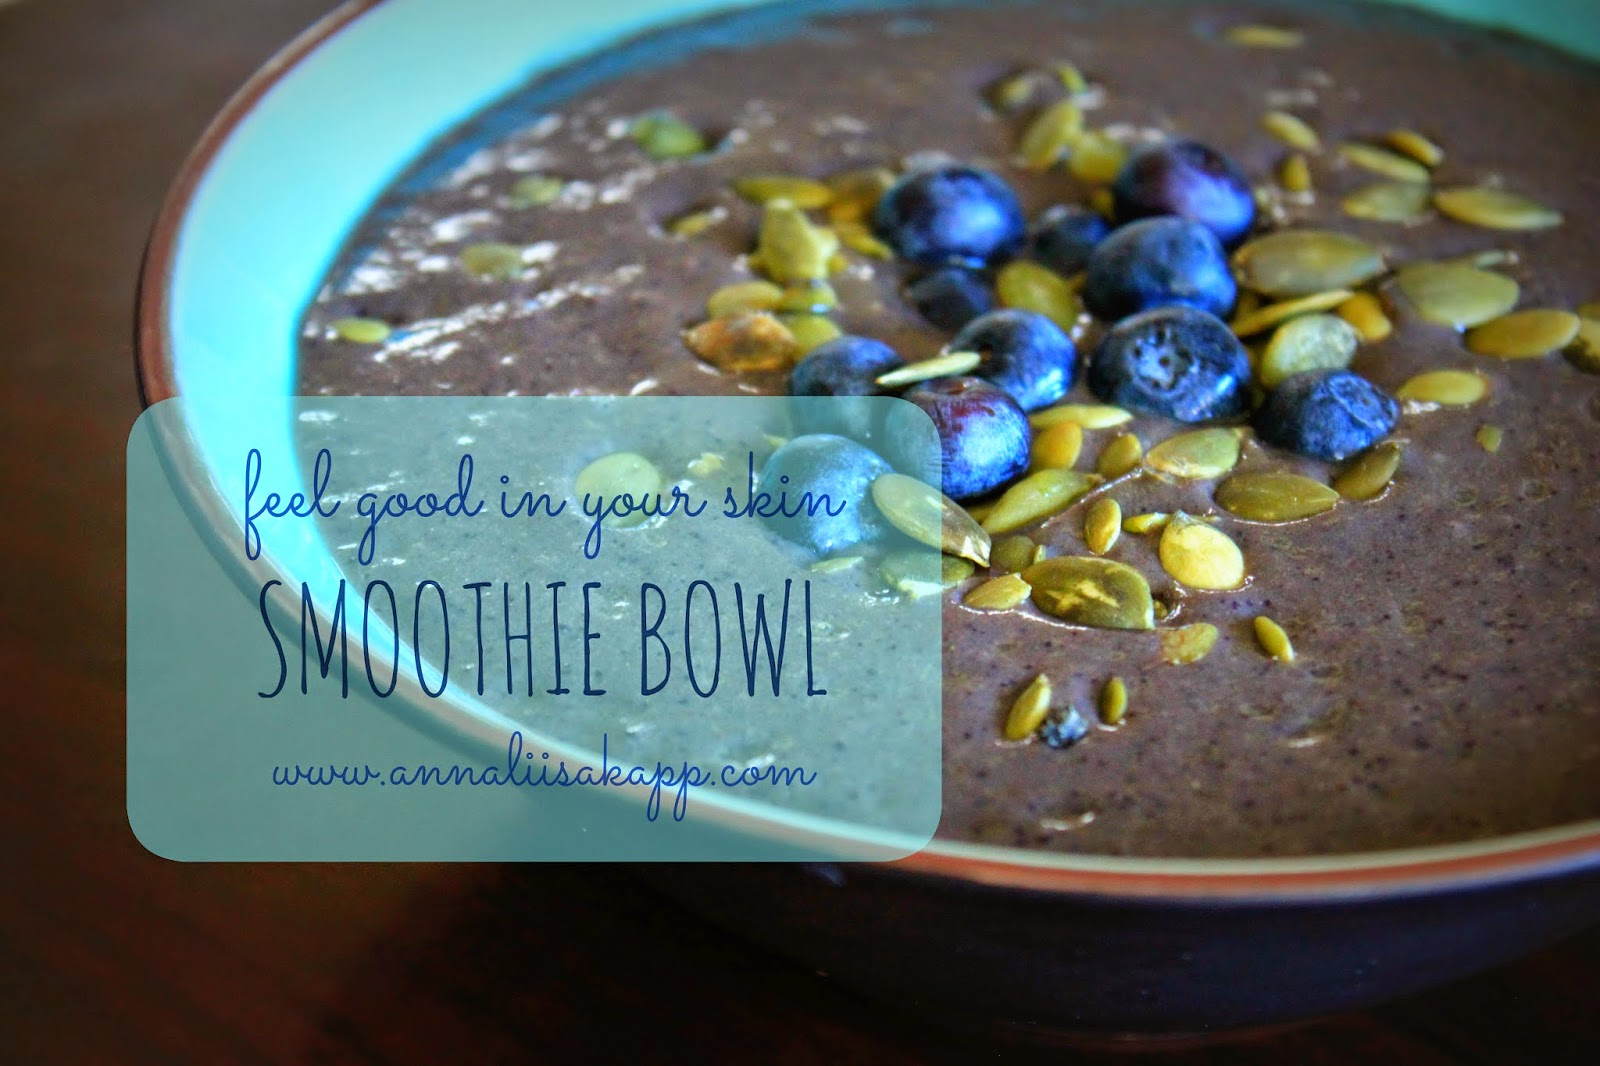 Acai Berry Detox Smoothie Bowl with Genuine Health Vegan Fermented Protein